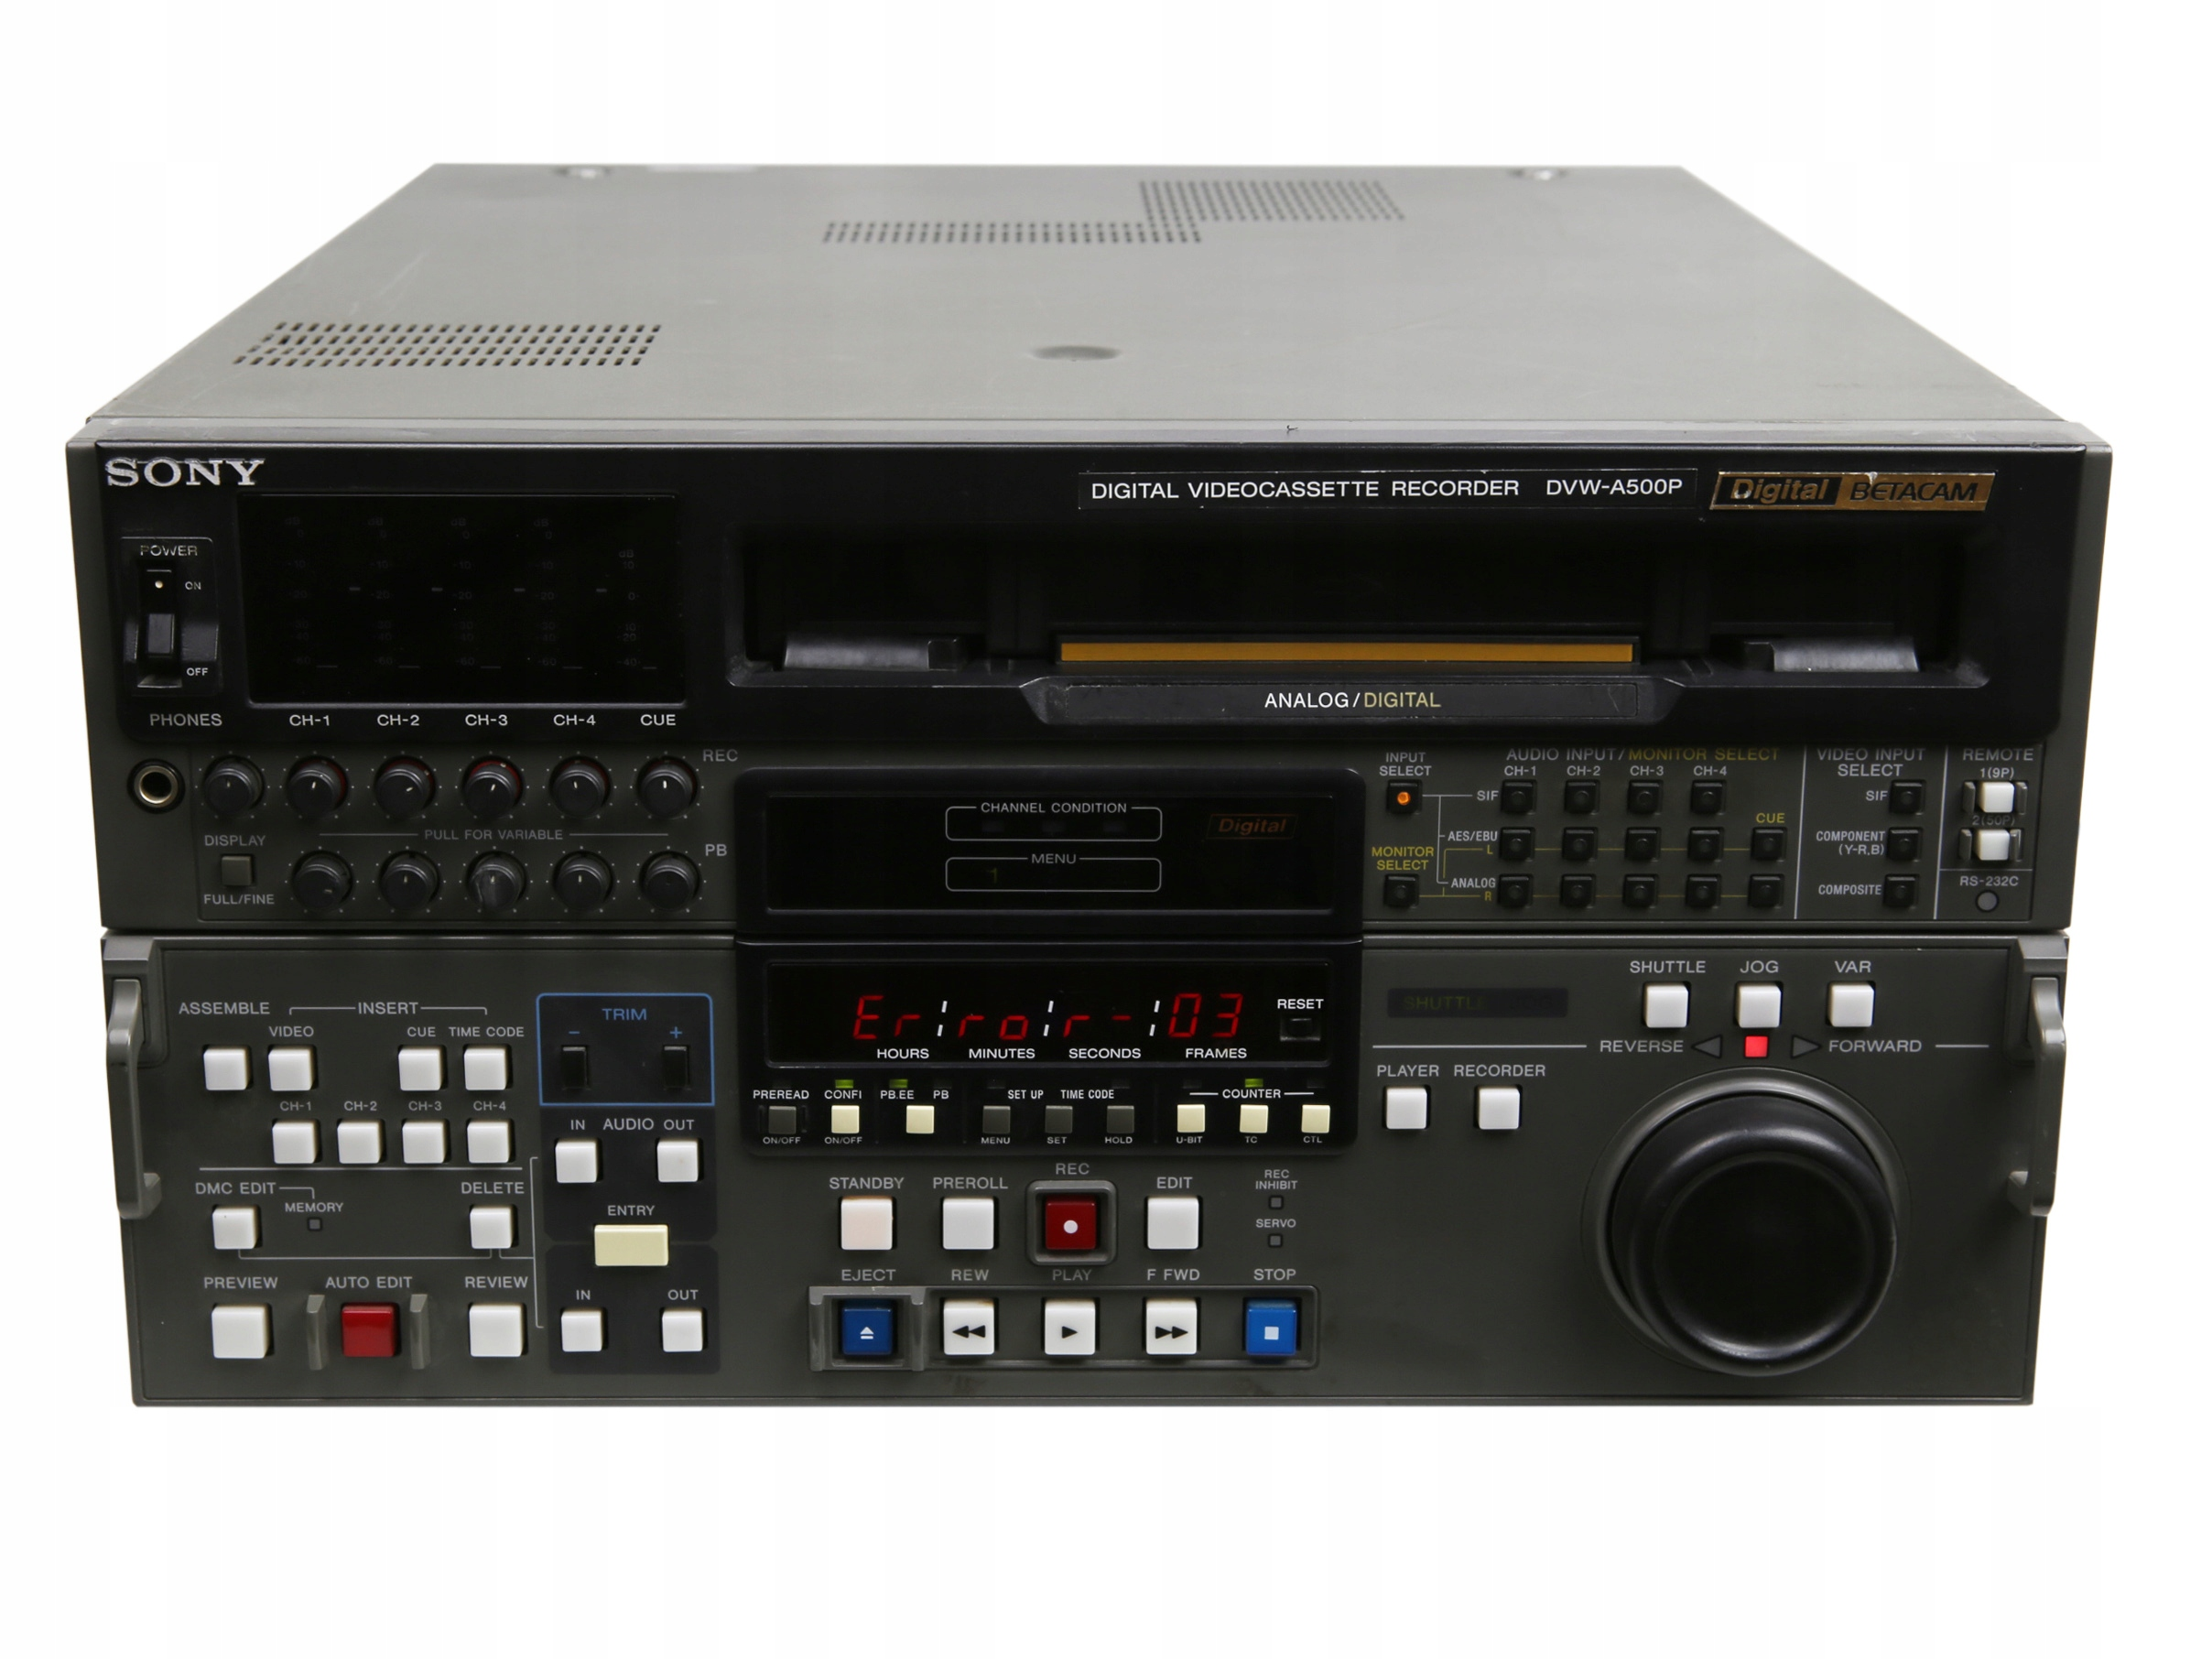 Item Sony DVW-A500P Digital Videocassette Recorder Beta